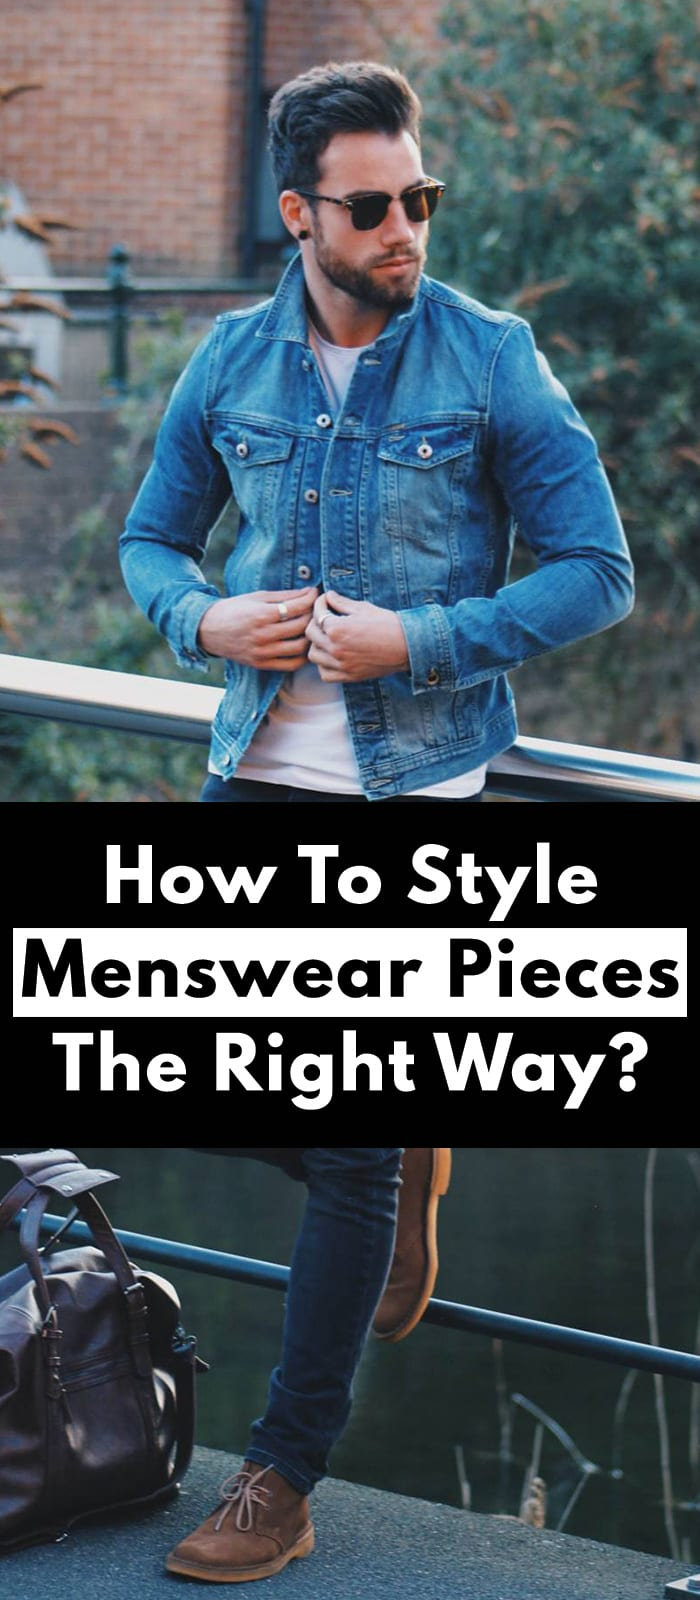 How To Style Menswear Pieces The Right Way